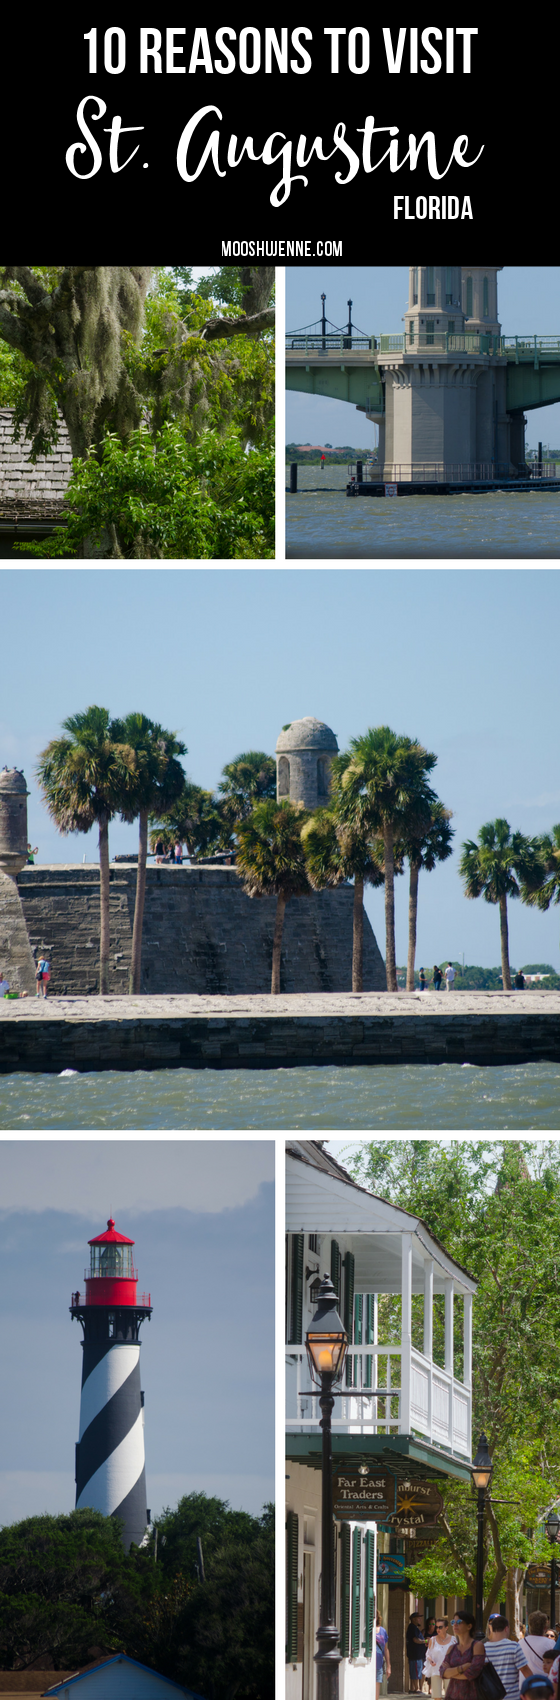 The history of St. Augustine captured our attention on Travel channel when they spoke about the Castillo. My love for everything pirate I knew we had to visit. Below is an account of what we did see and enjoyed in St. Augustine. via @mooshujenne